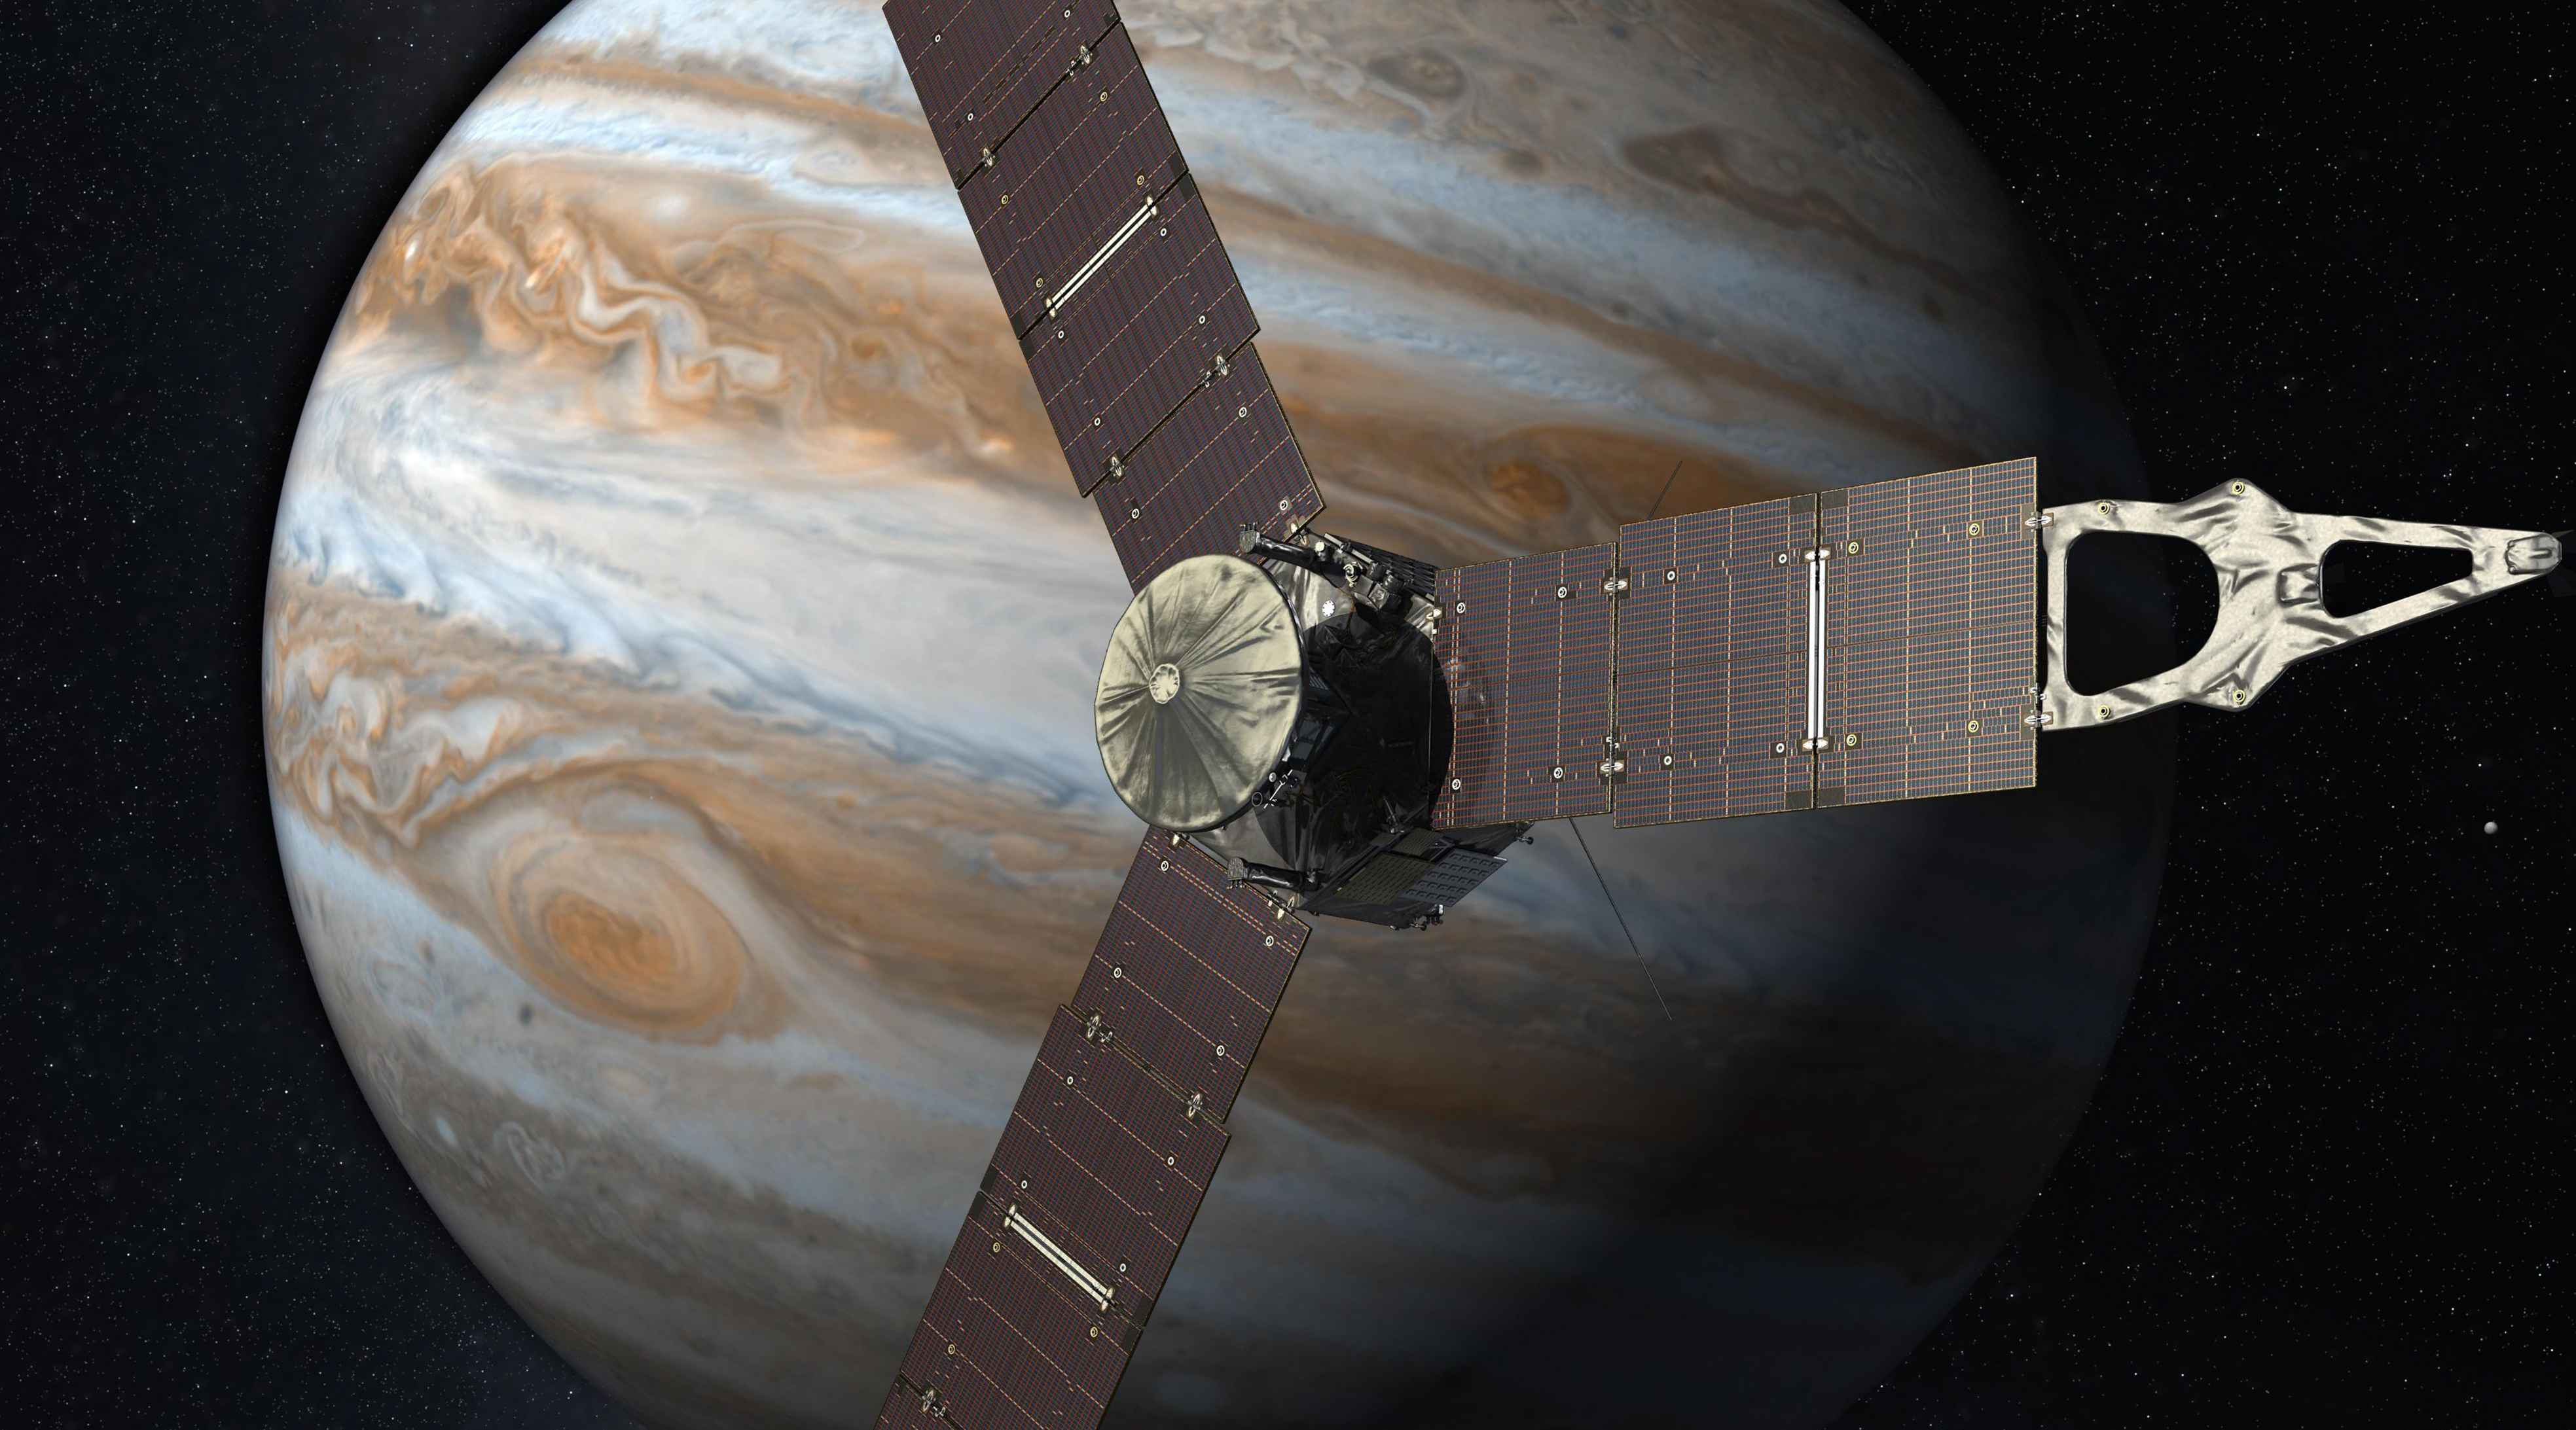 Onwards to Jupiter, Breaking Records | HuffPost